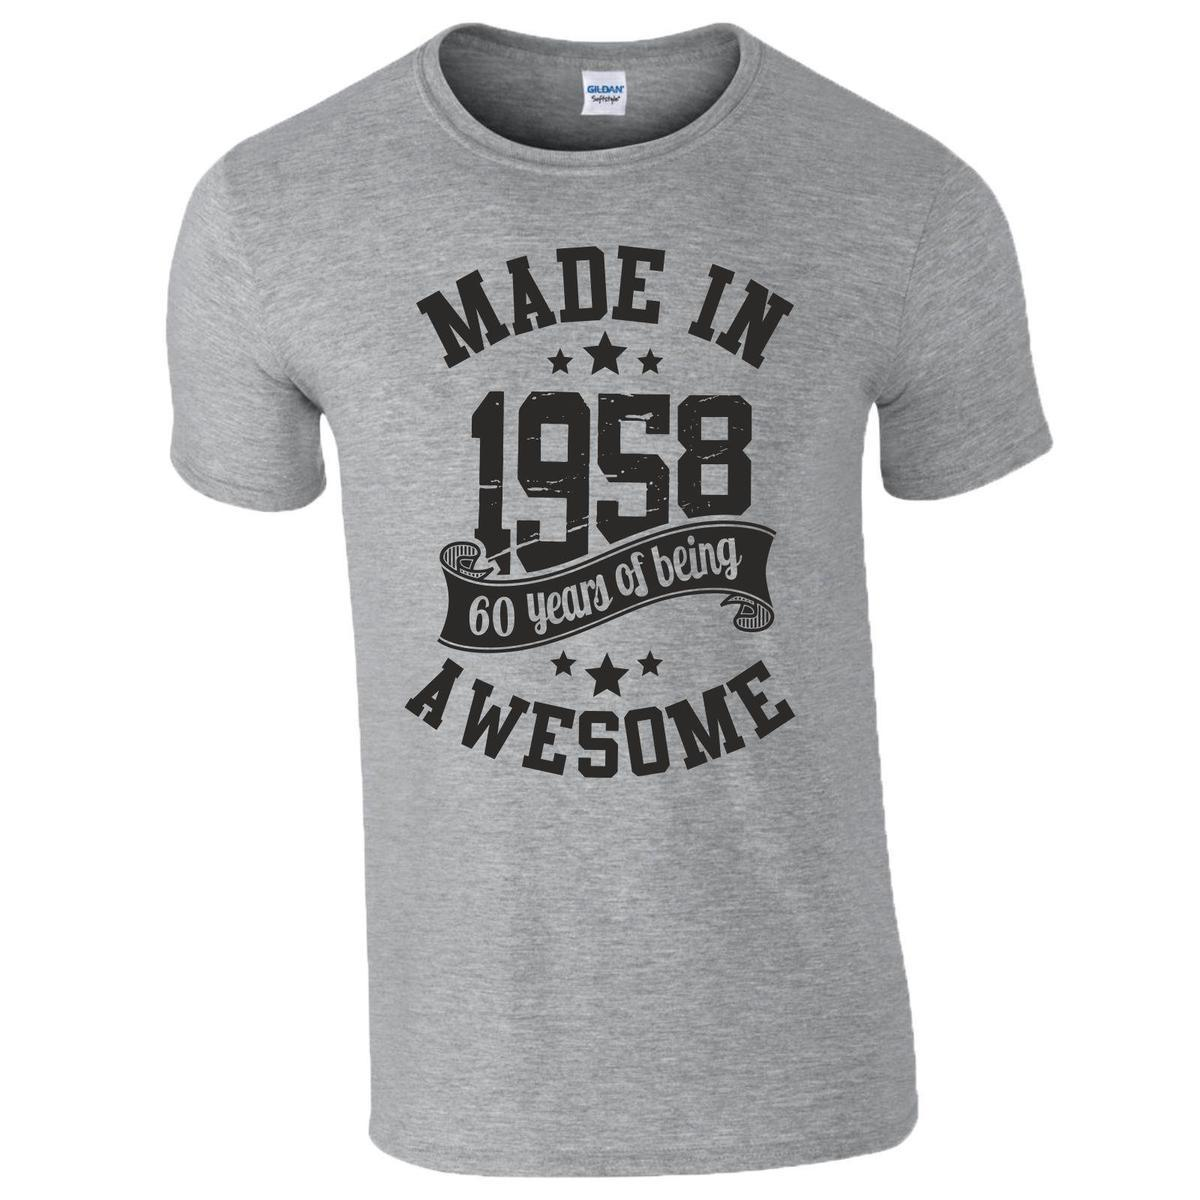 5e0092a7 60th Birthday Gift T Shirt Made In 1958 Being Awesome Age 60 Years Mens  Ladies Cool Tee Shirts Designs Web T Shirts From Yuxin0004, $13.8|  DHgate.Com